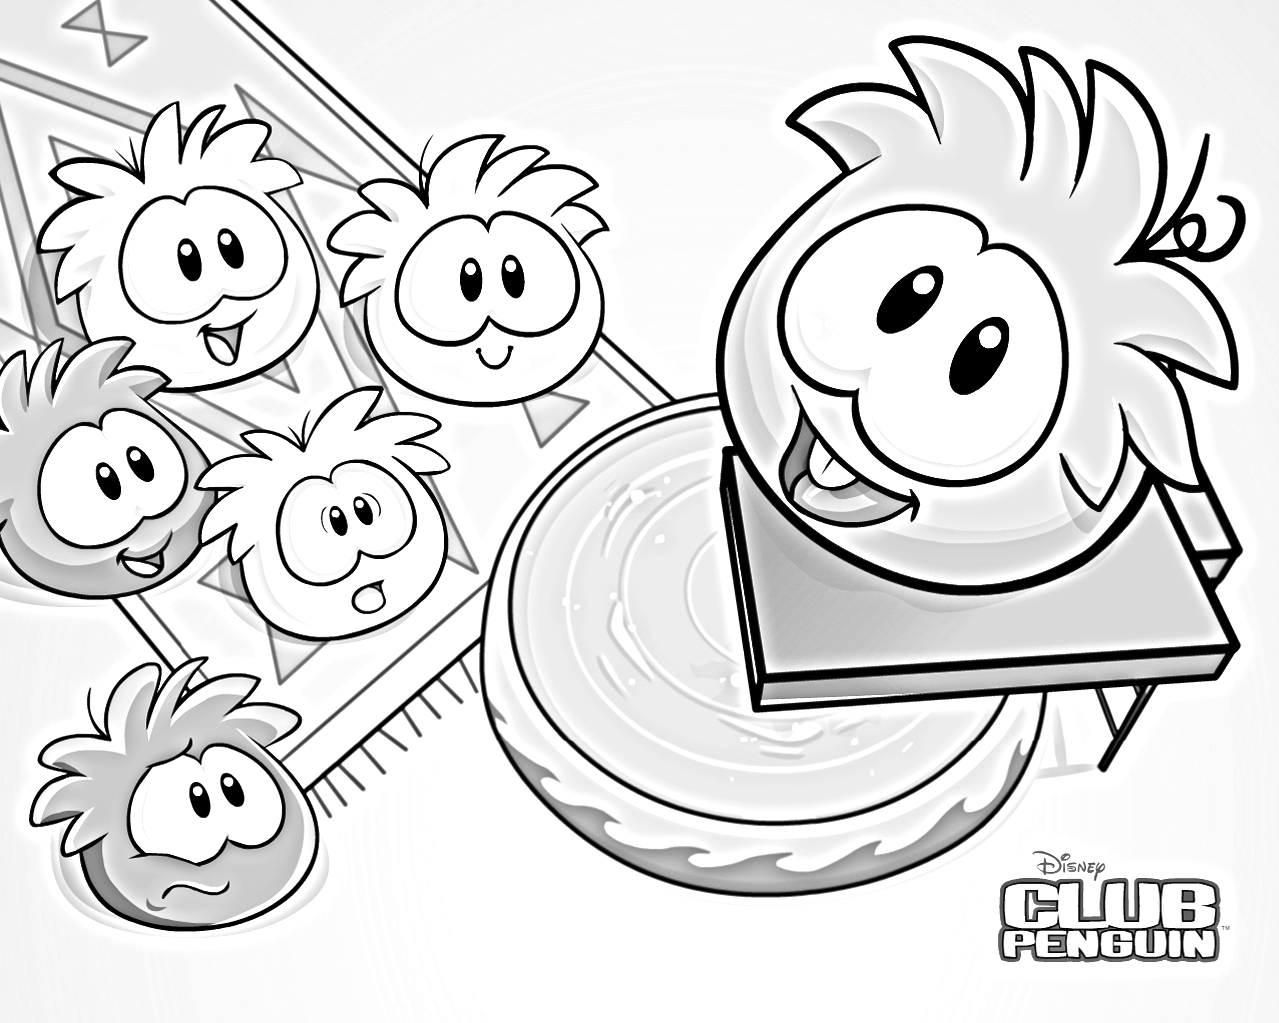 Imagenes de club penguin para colorear e imprimir imagui for Club penguin coloring page